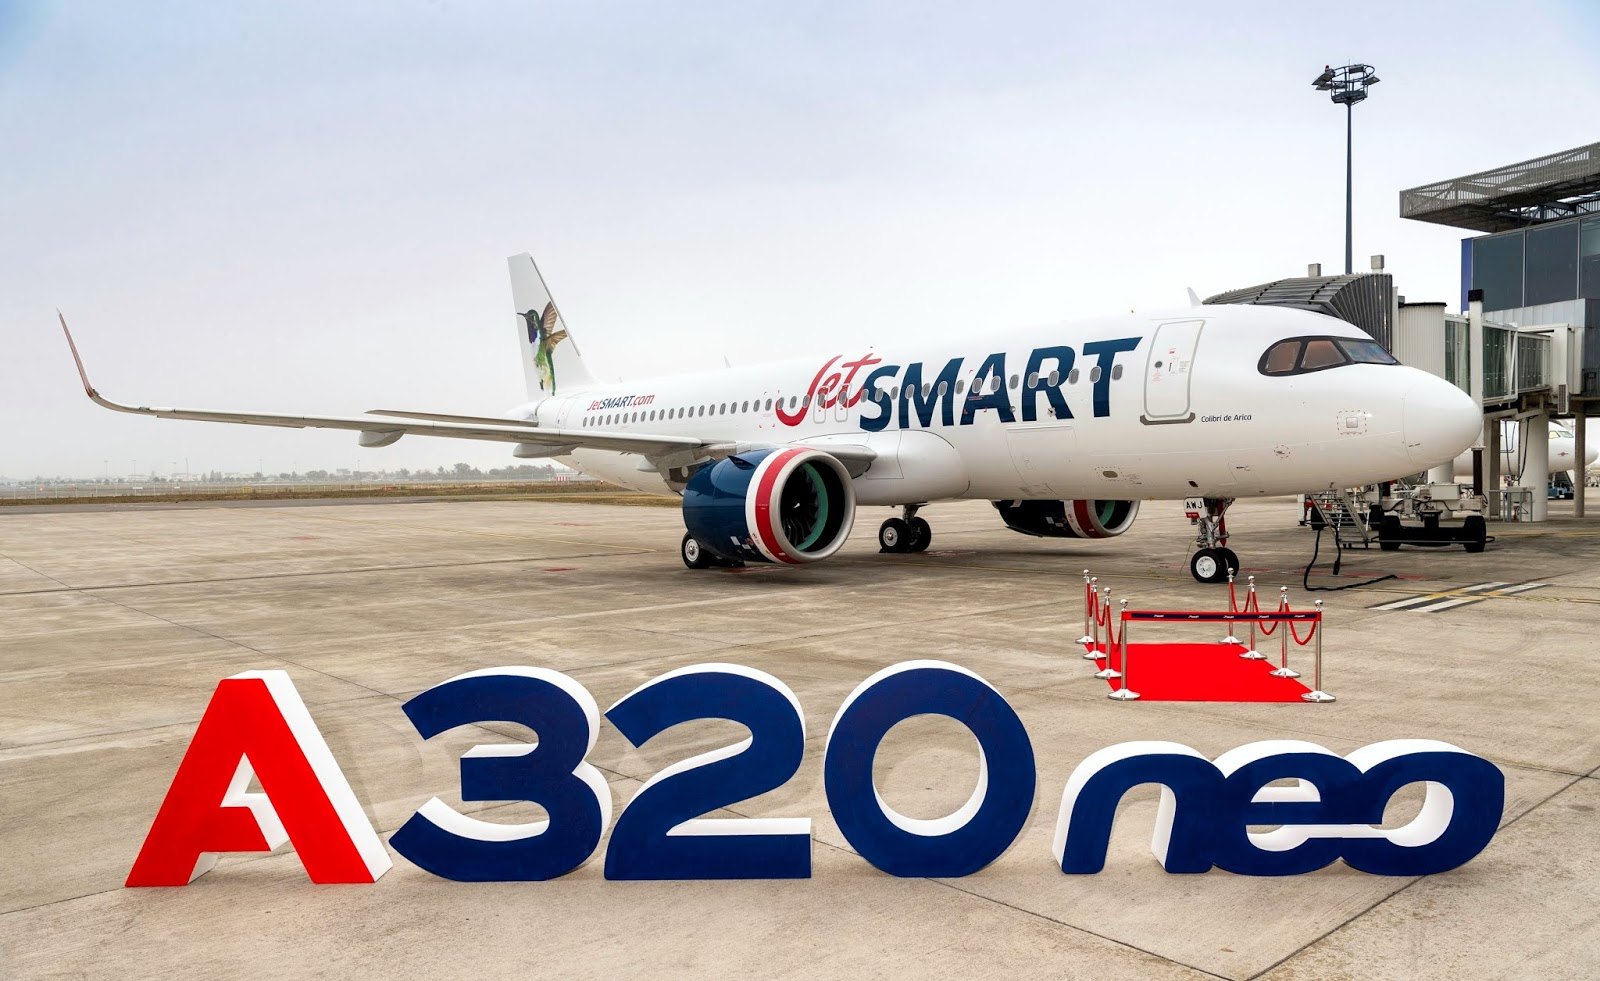 JetSmart Airbus A320neo October 2019 Delivery